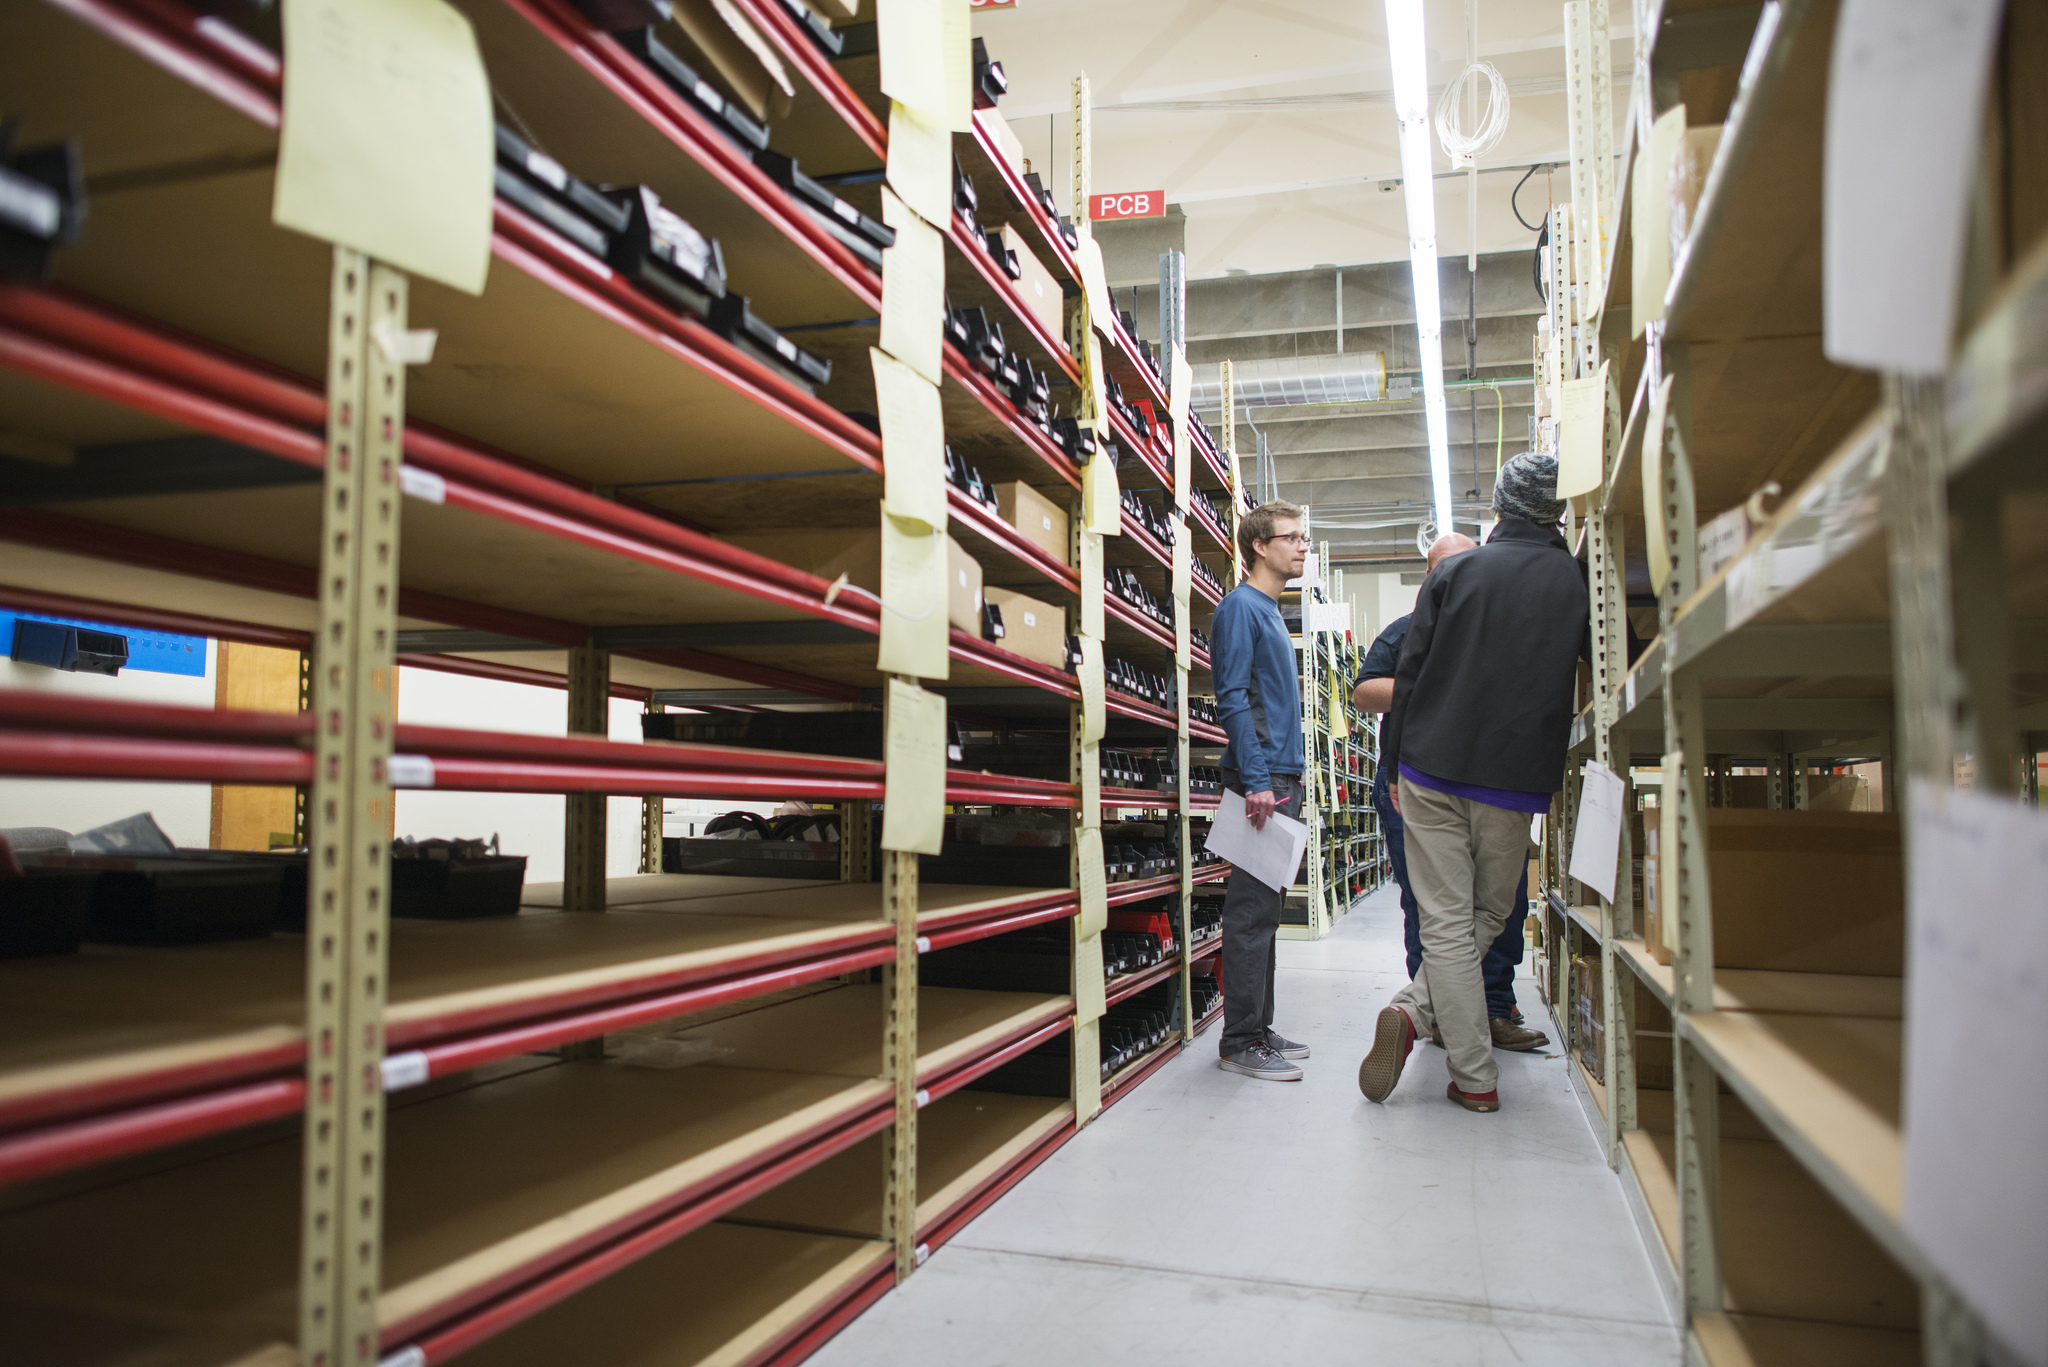 Inventory day is a big day for any business. Make inventory easier with these tips on how to better organize and manage the inventory process